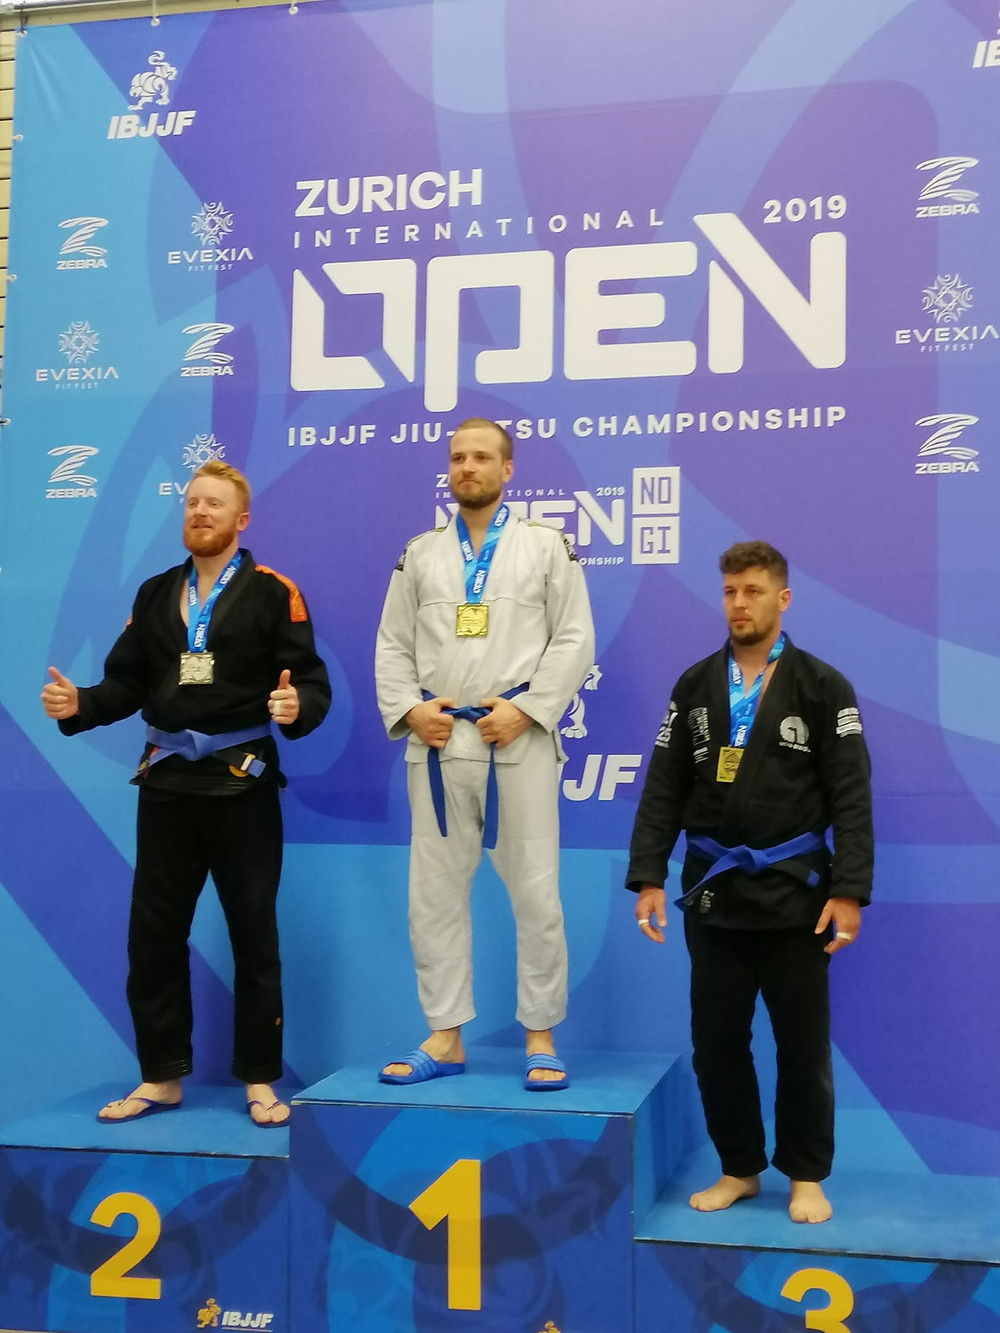 SAMULI LEPPÄNEN - WINNING THE GOLD MEDAL AT THE IBJJF ZURICH OPEN 2019